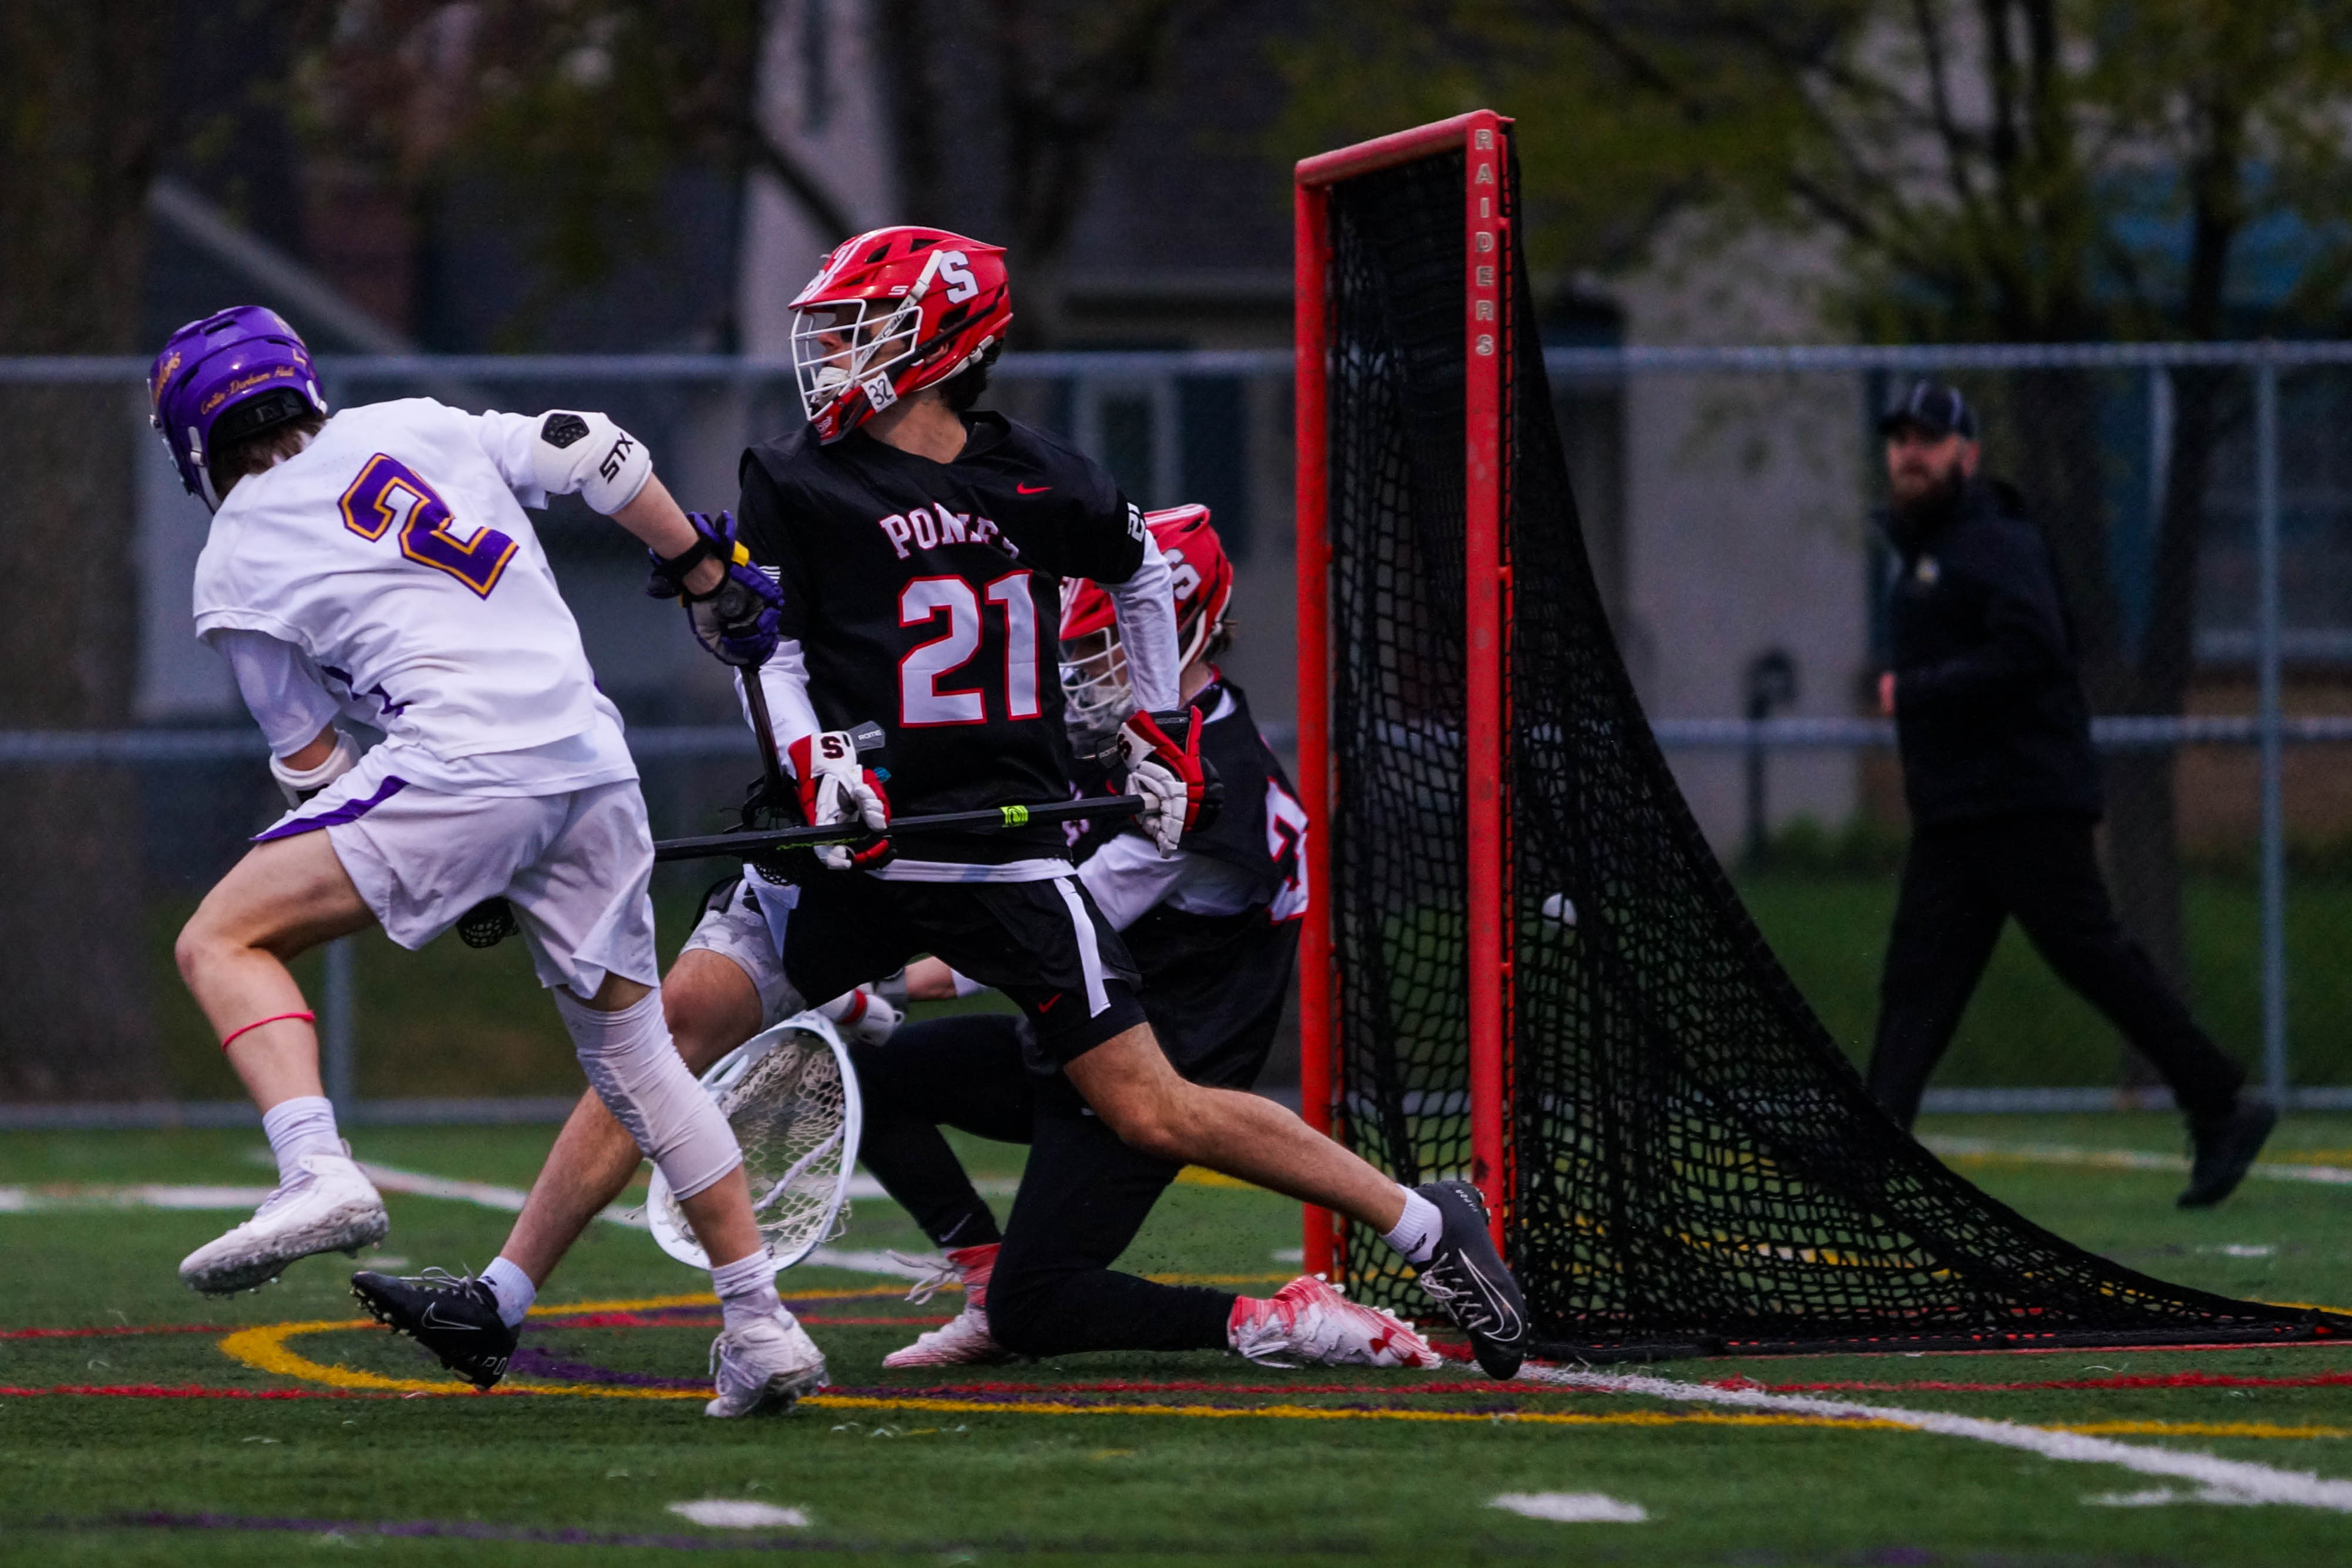 Cretin-Derham Hall junior Luke McCarthy (2) records one of his two goals Wednesday at home against Stillwater. The Raiders lost to the Ponies 5-4. Photo by Korey McDermott, SportsEngine